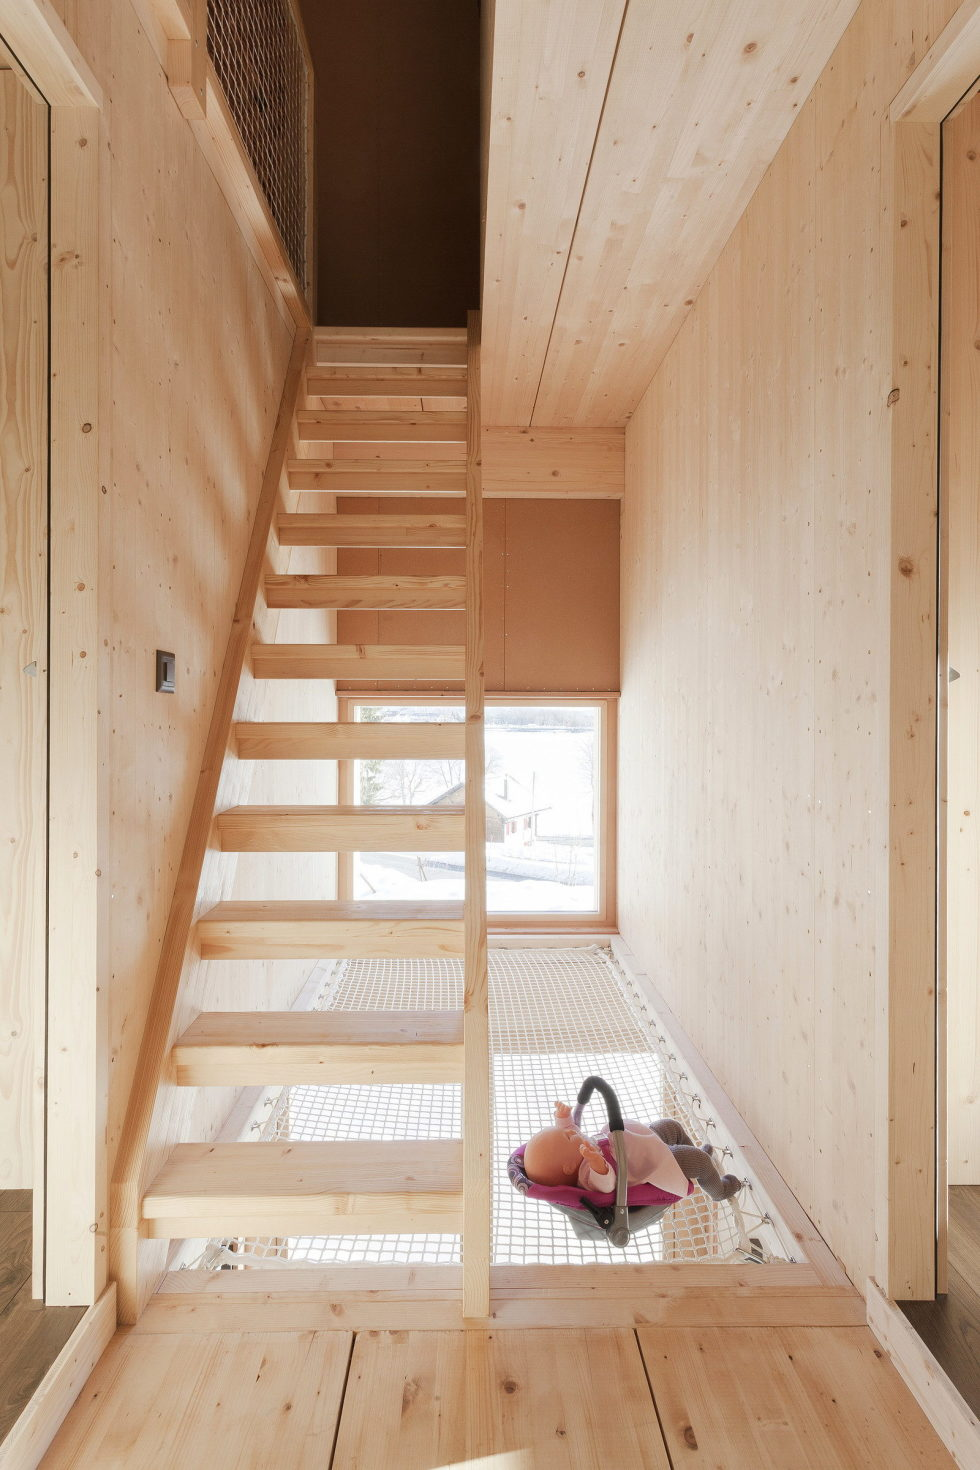 The House For A Family With Children at Switzerland Mountains From Kunik de Morsier architects 12